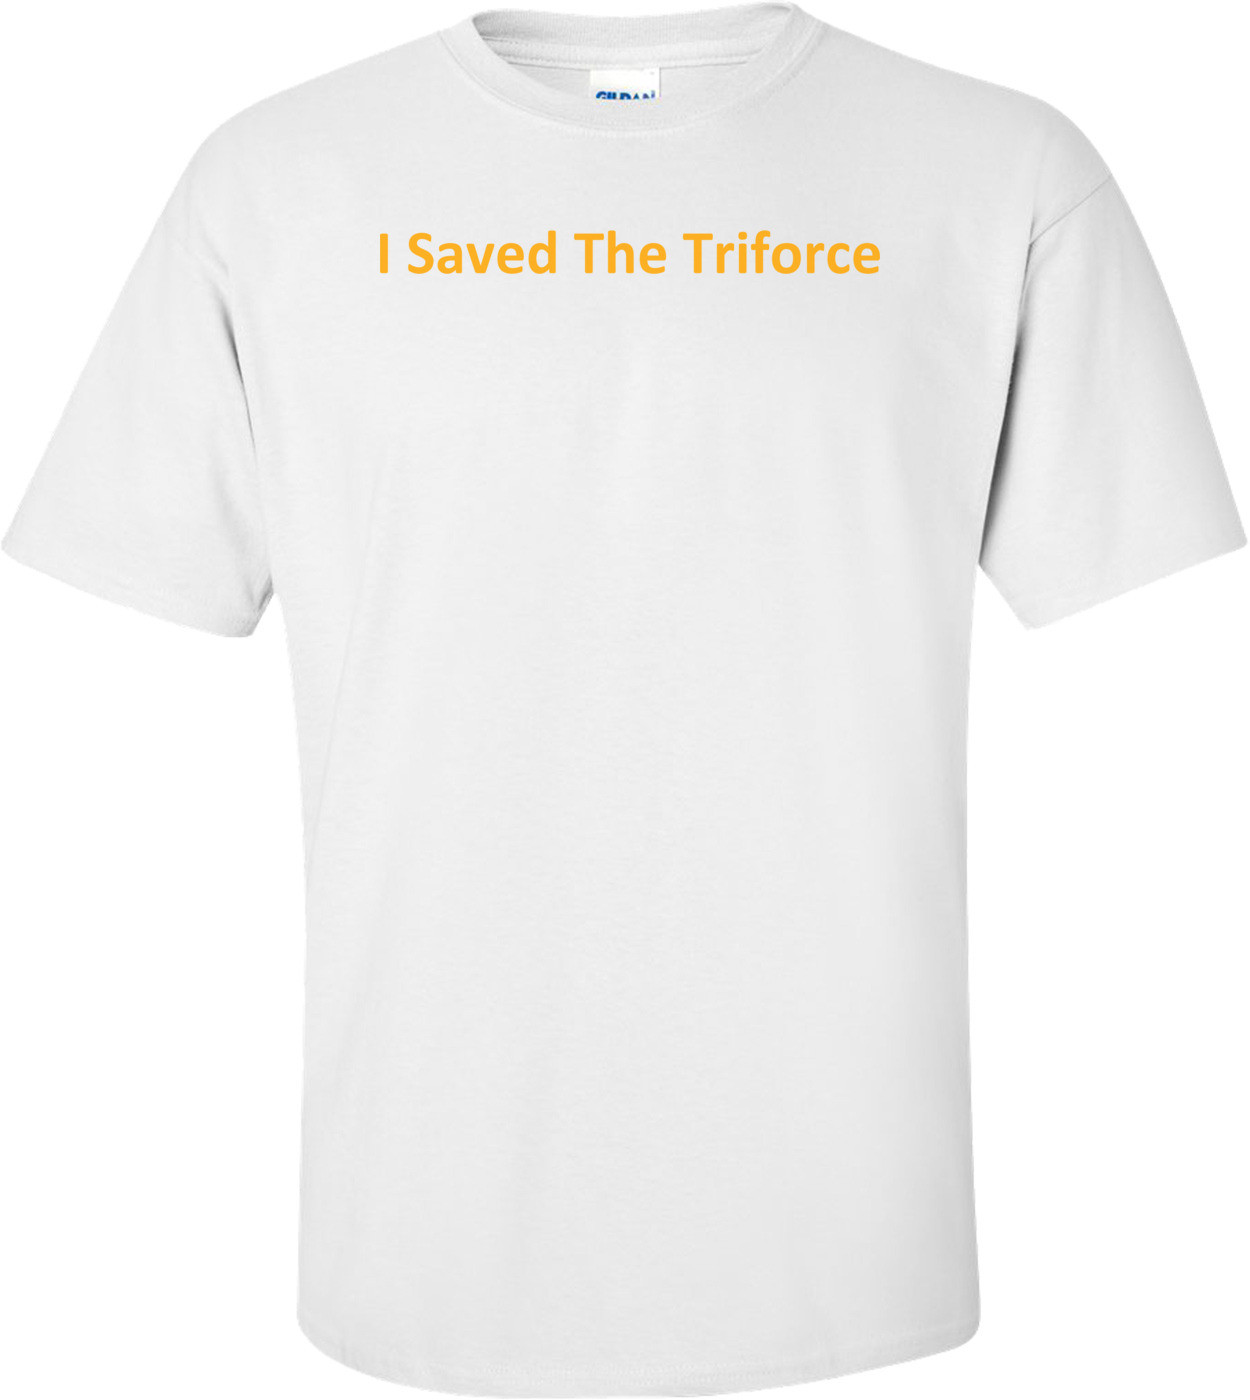 I Saved The Triforce T-Shirt